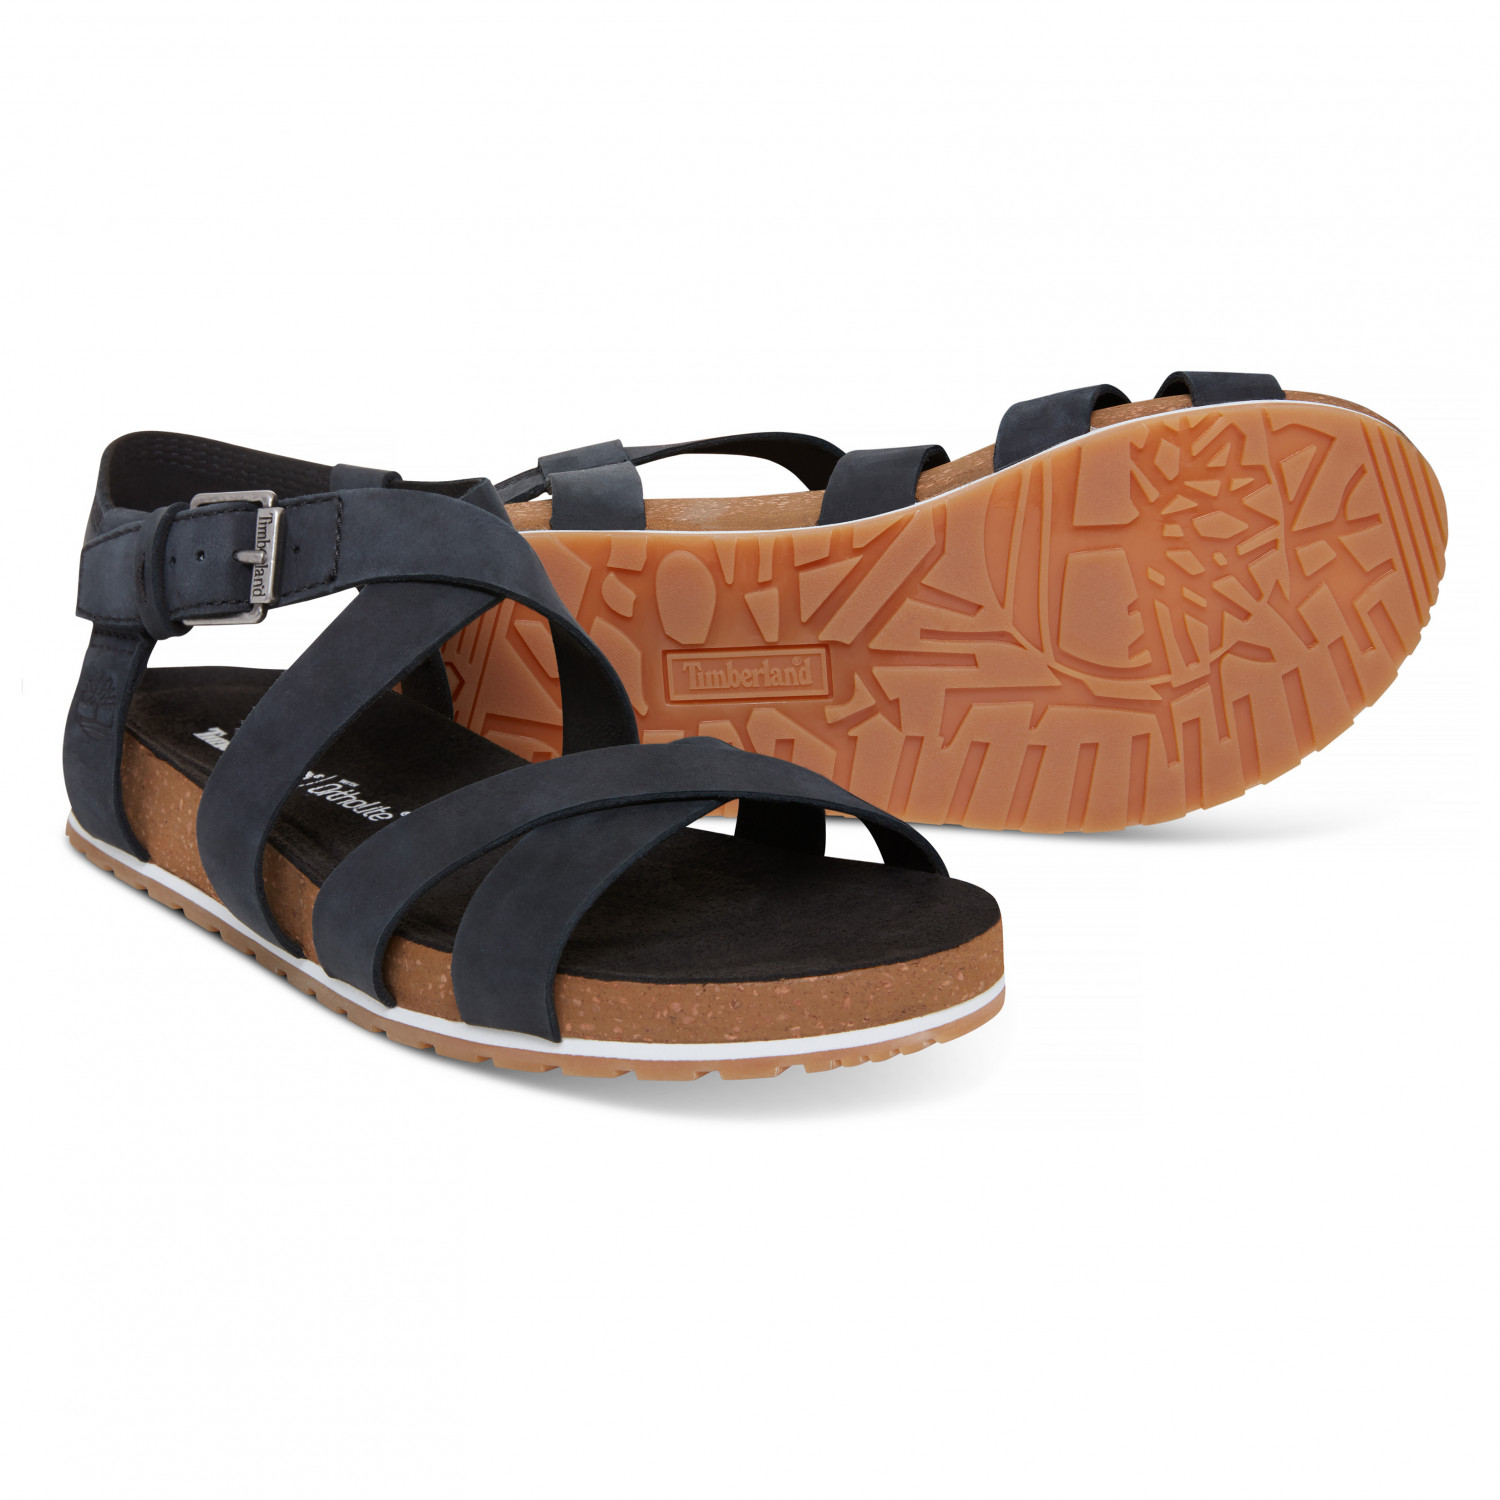 0e10251cf ... Timberland - Women's Malibu Waves Ankle Strap Sandal - Sandals ...